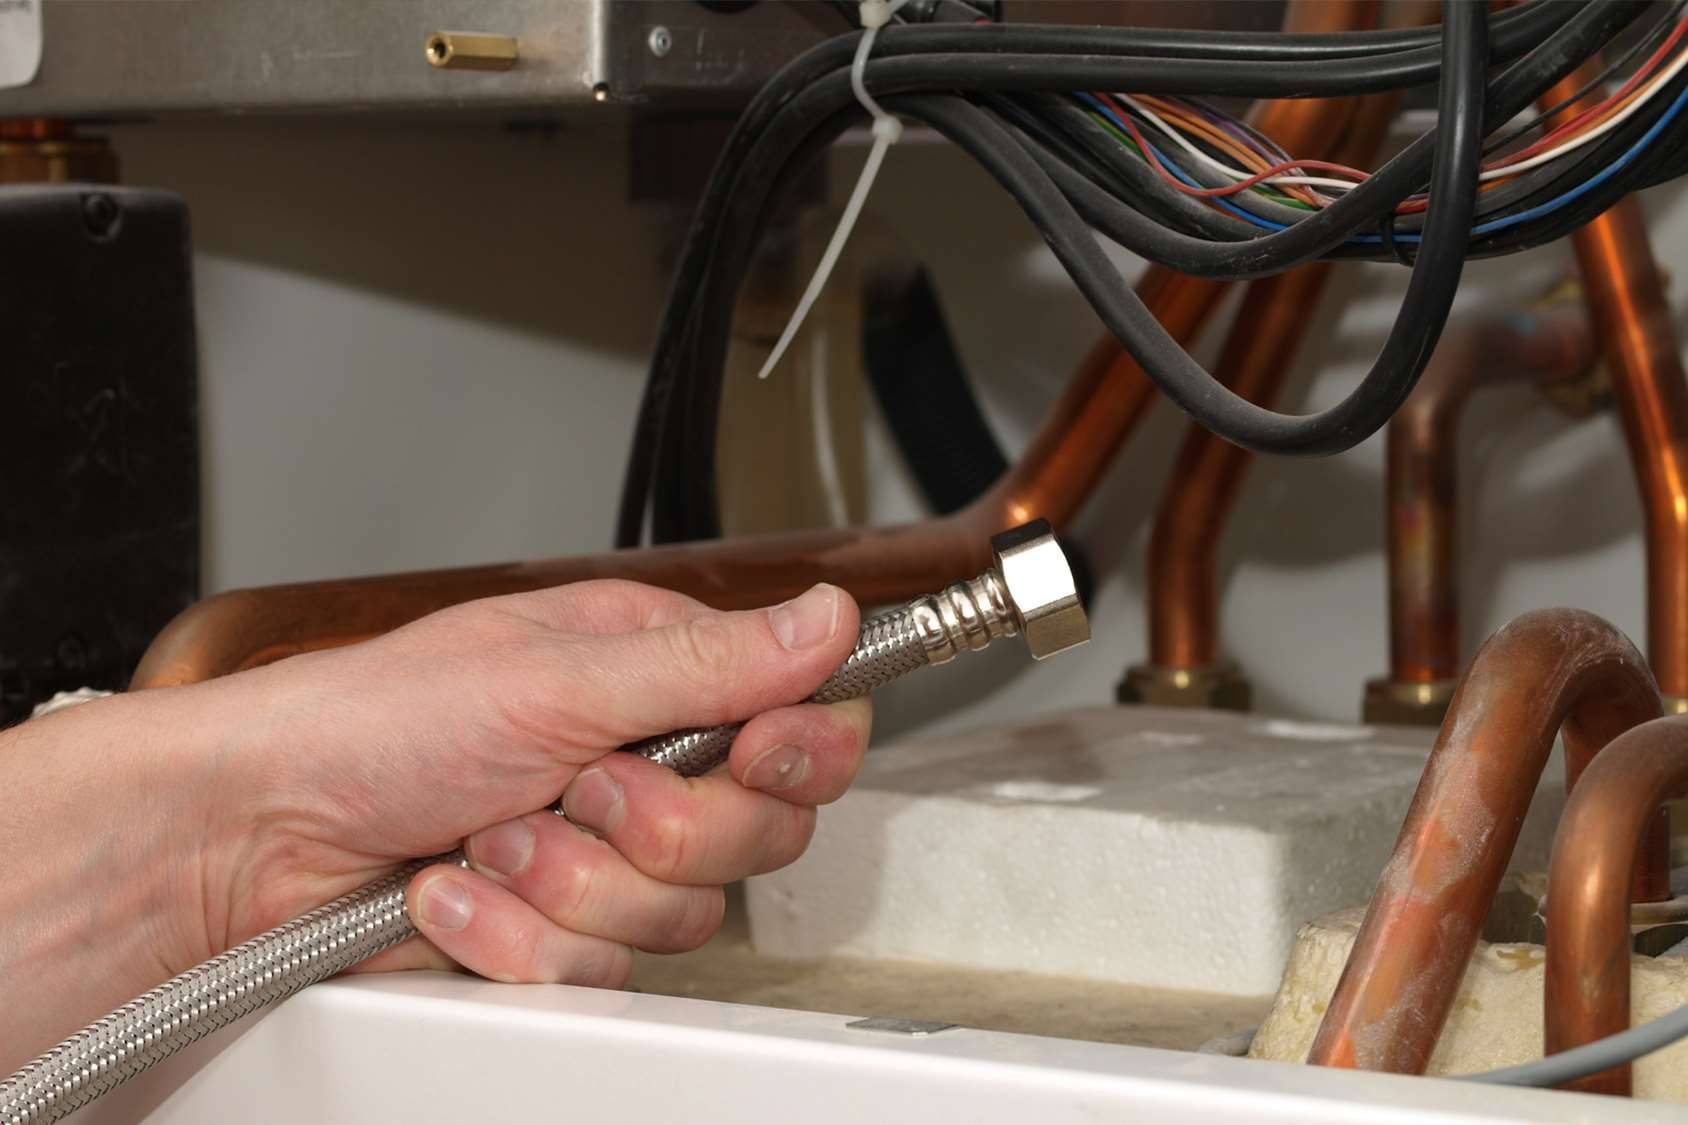 Man hand with cable inside the condensing boiler